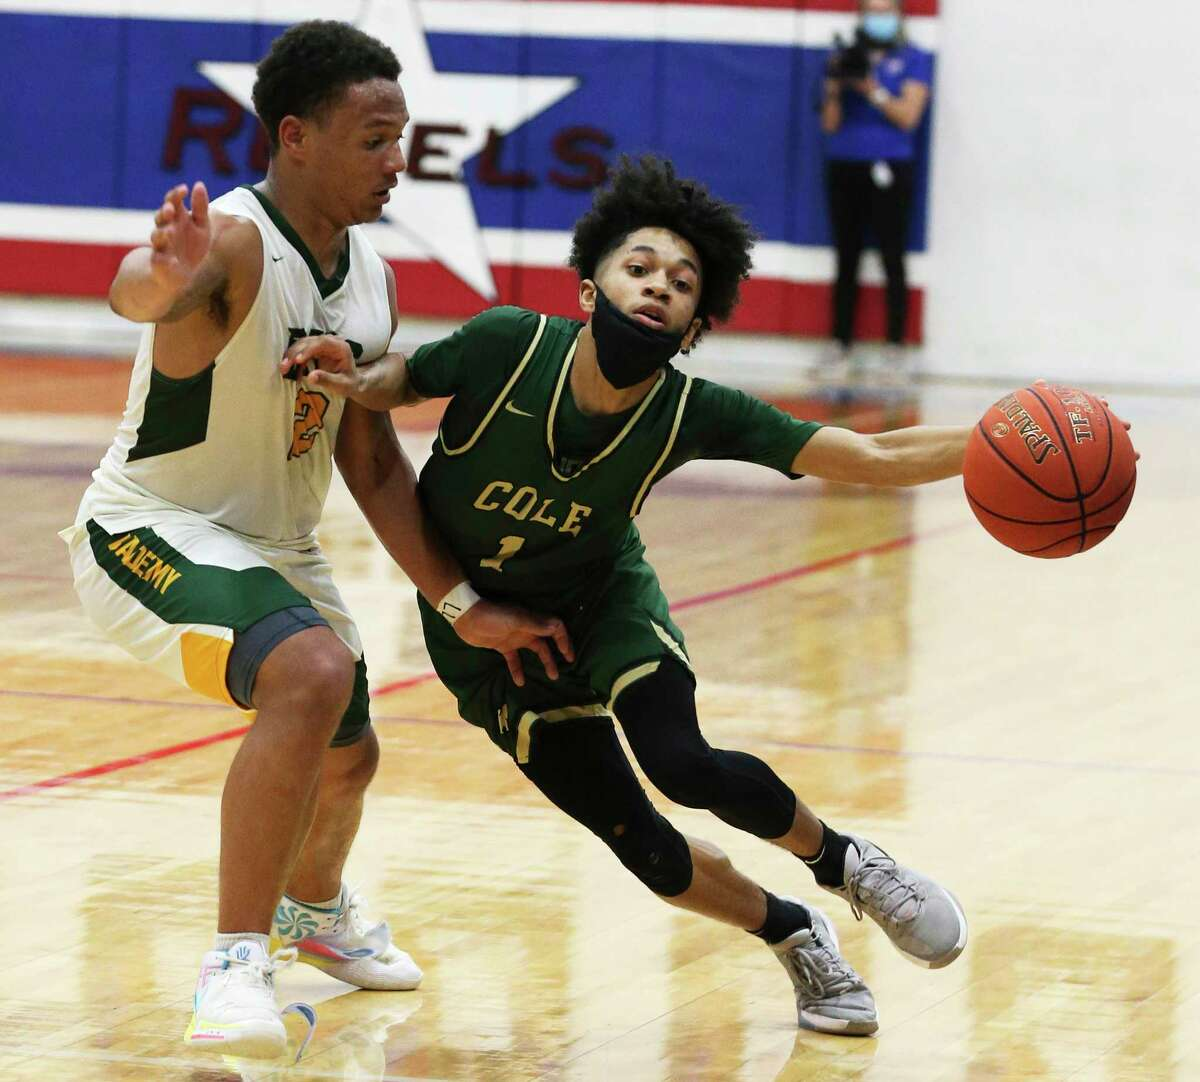 Cole's Silas Livingston (01) drives around Little River Academy's Darion Franklin (02) during the Class 3A state semifinal basketball game in Buda on Tuesday, Mar. 9, 2021. Cole defeated Academy, 59-50, to return the state finals.